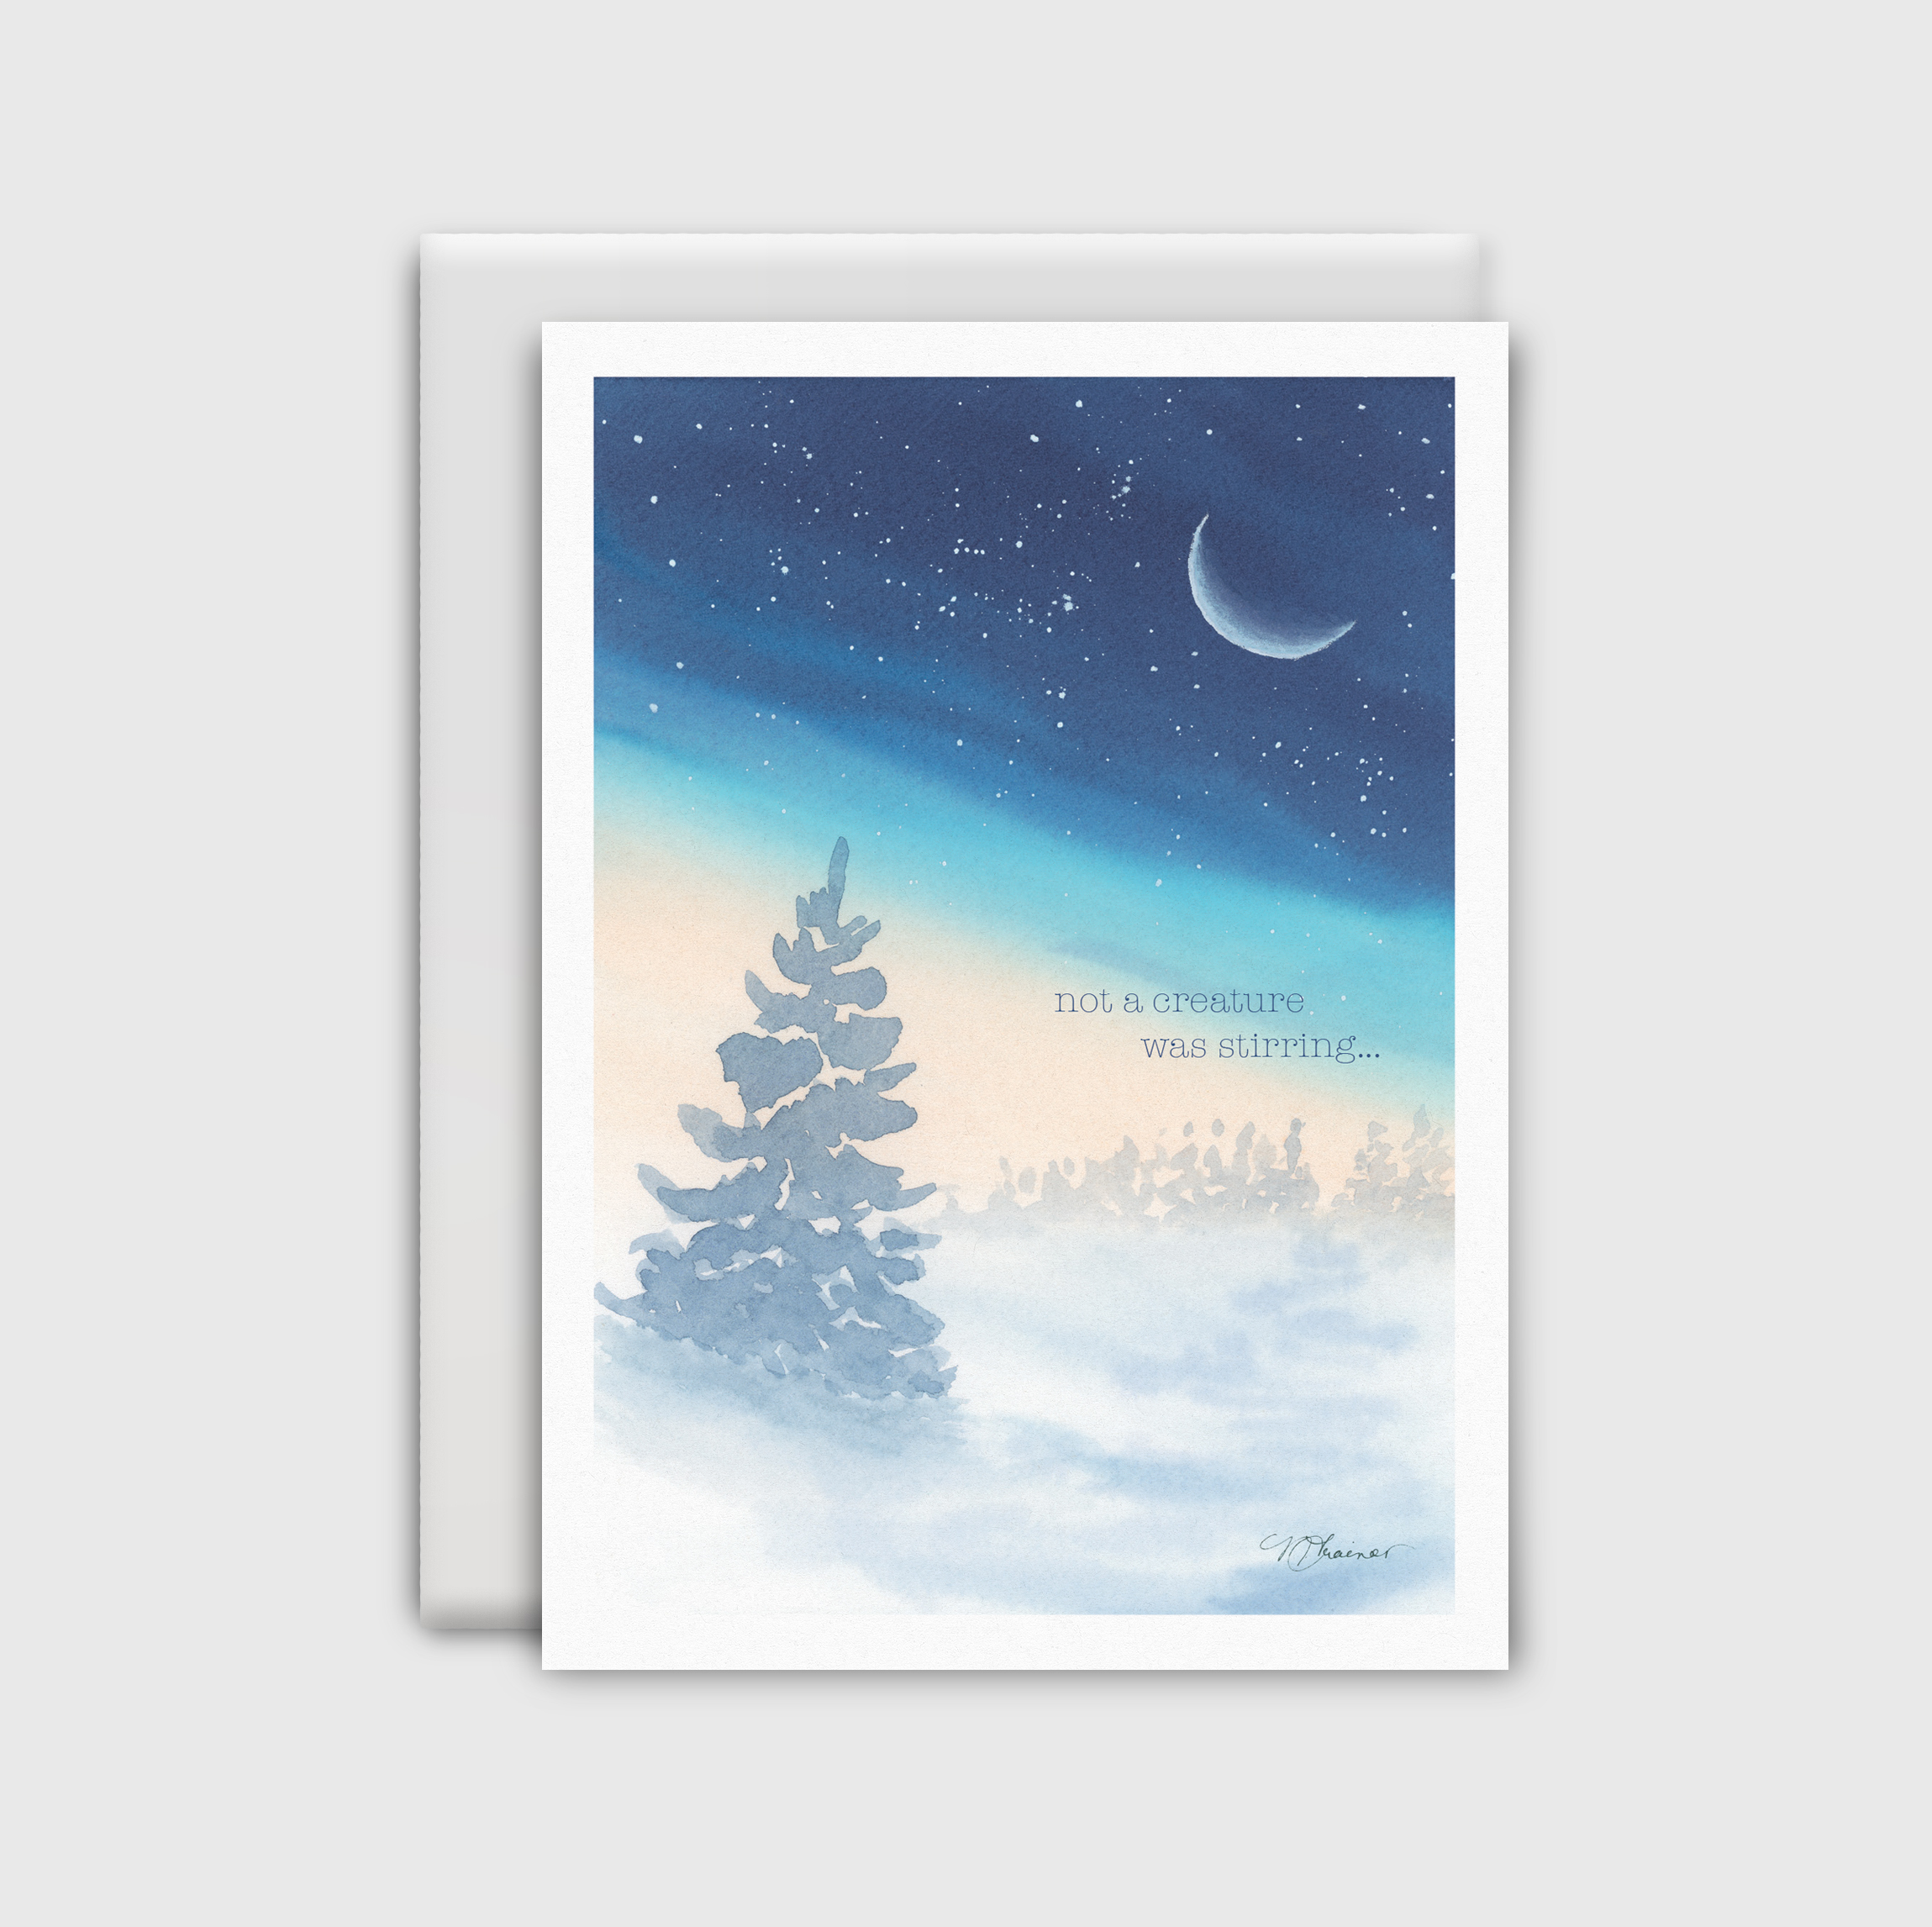 Watercolor winter scene